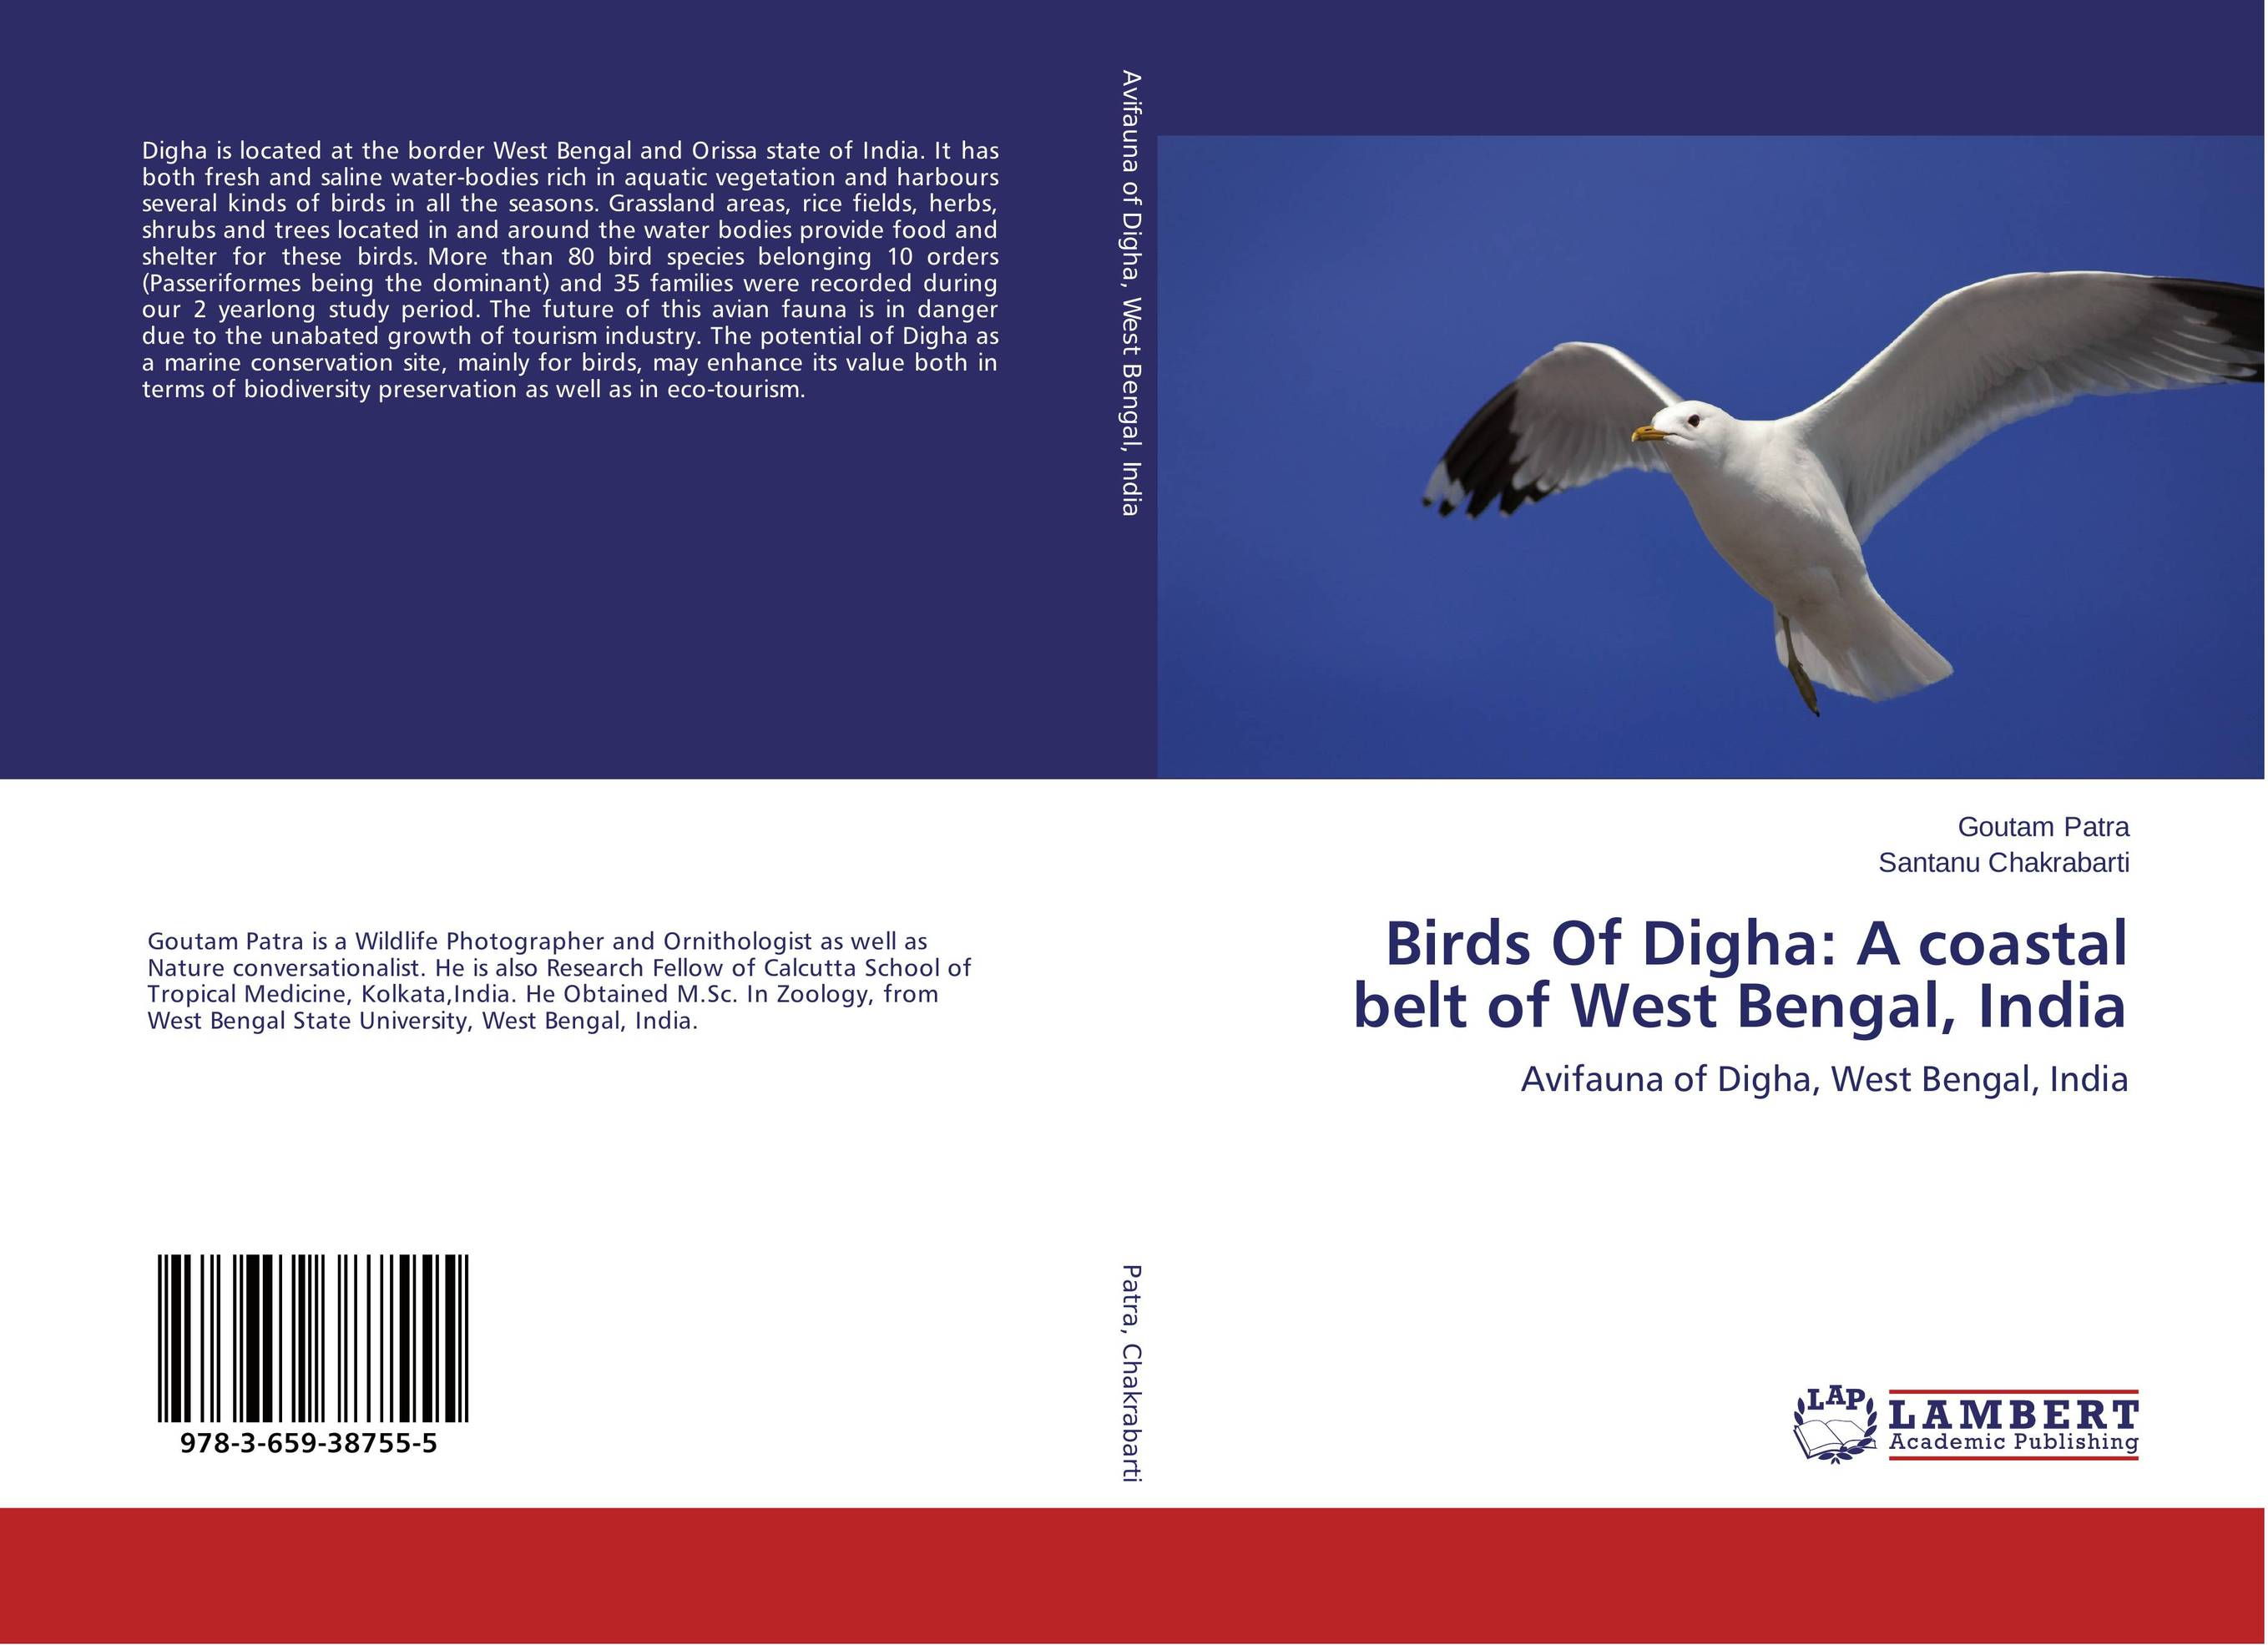 Birds Of Digha: A coastal belt of West Bengal, India biomagnification of mercury in the biota of a ramasar site in india